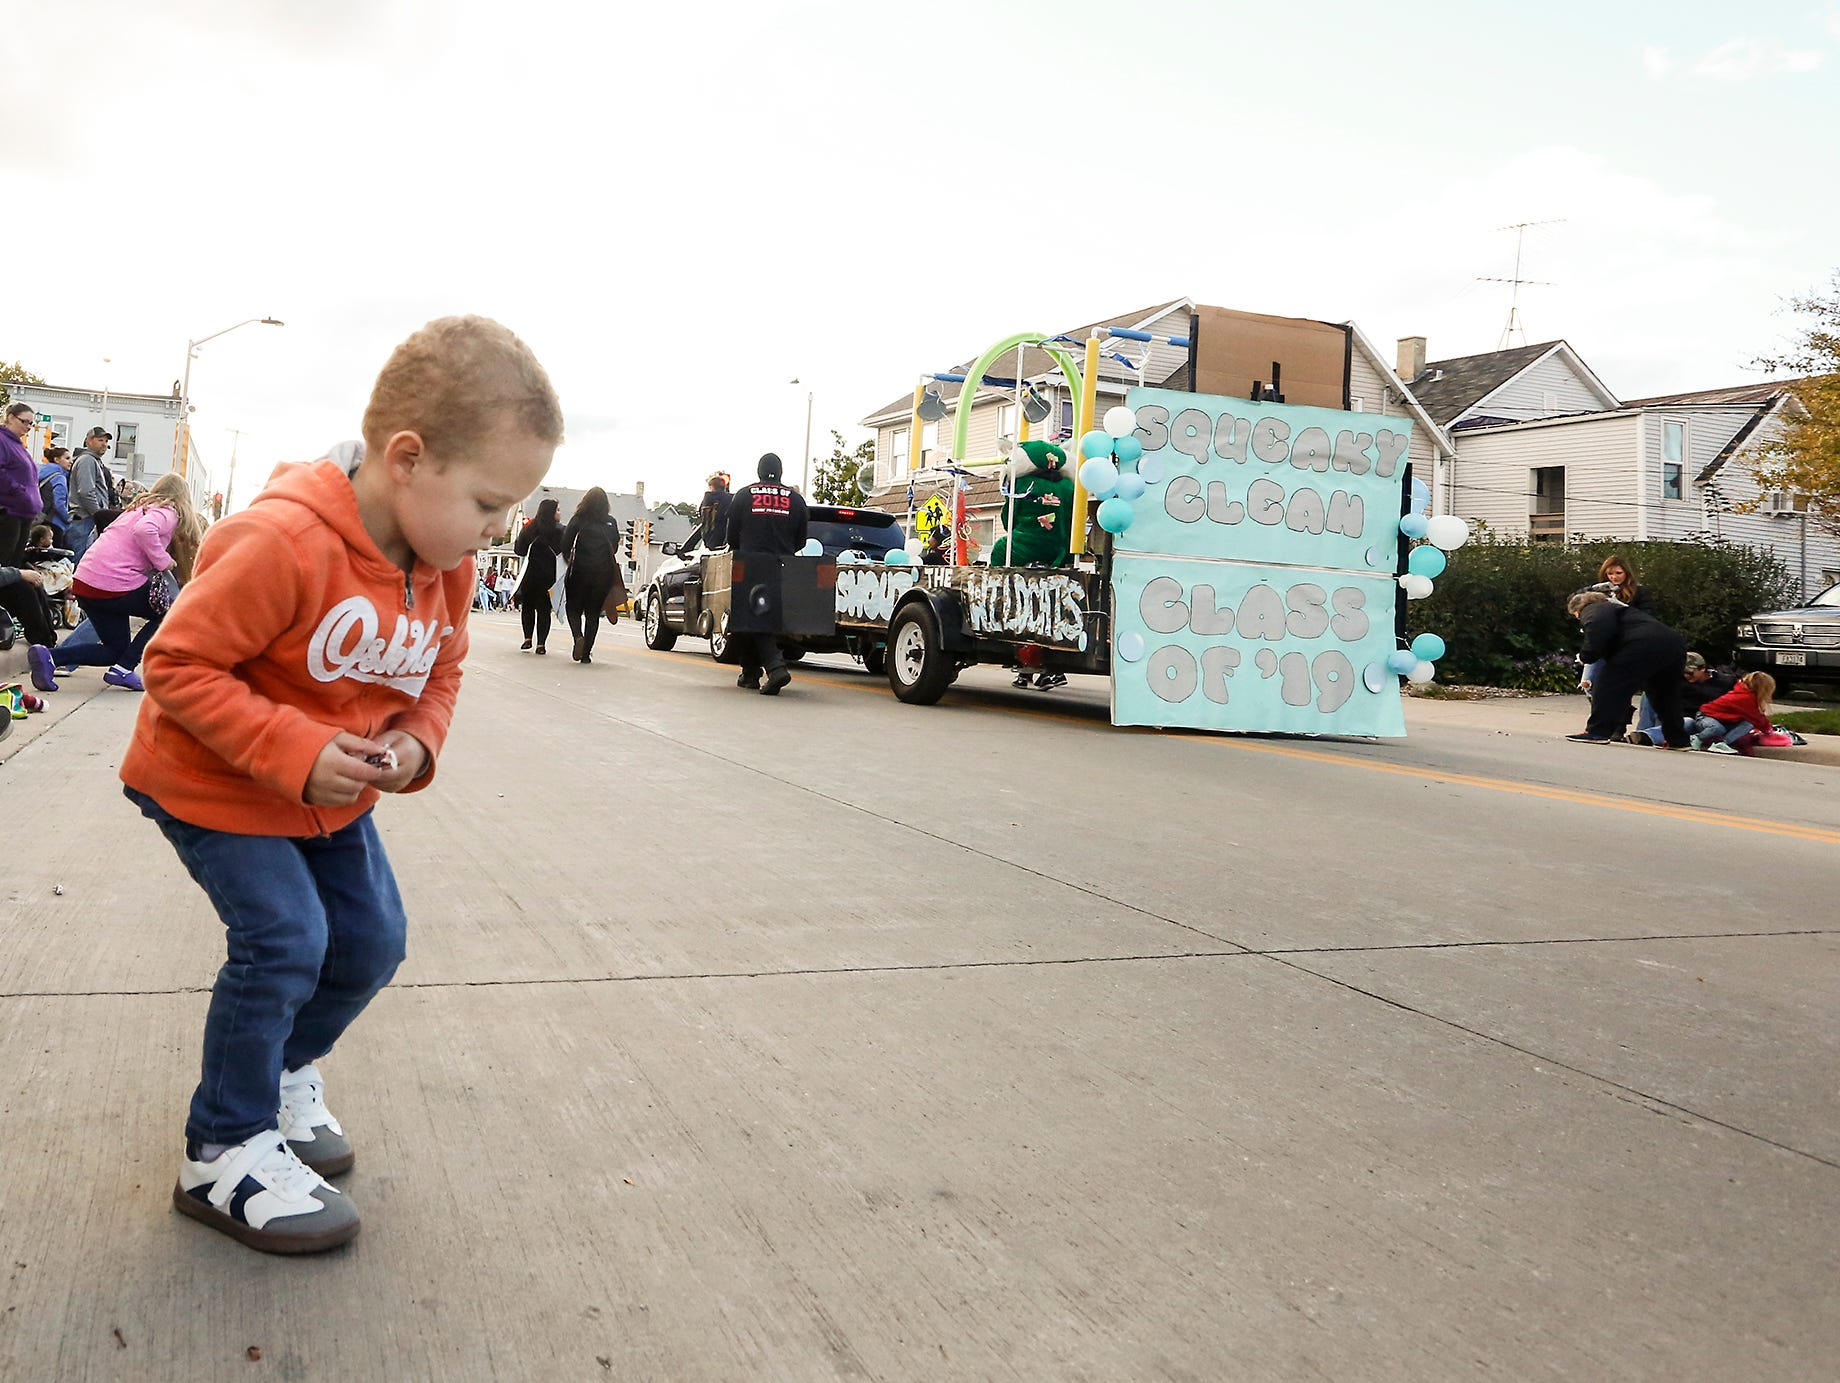 Cole Adams of Fond du Lac gathers candy thrown during the Fond du Lac High School football homecoming parade Friday, Sept. 28, 2018, which went down portions of Martin Avenue and Ninth Street in Fond du Lac, Wisconsin.